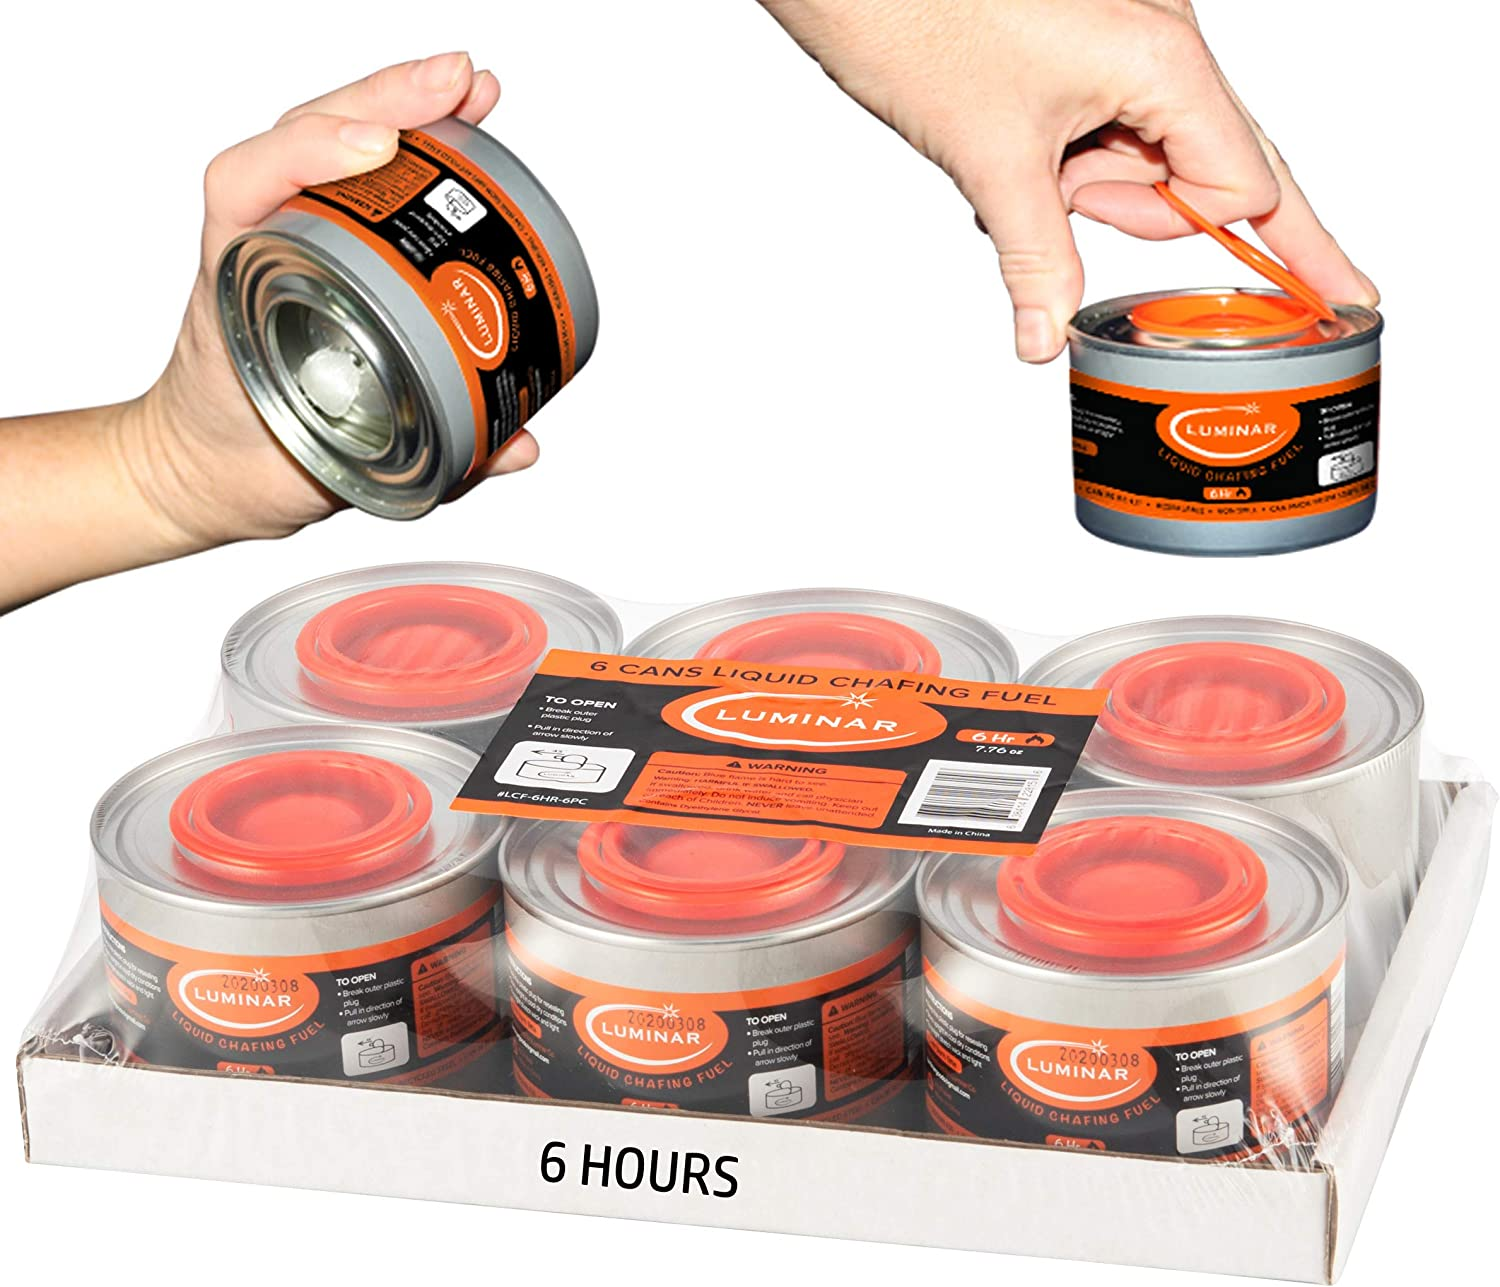 6 Hour Chafing Fuel Liquid Wick Cooking Cans Buffet Food Warmer Dish Burners - Easy Open - 6 Pack